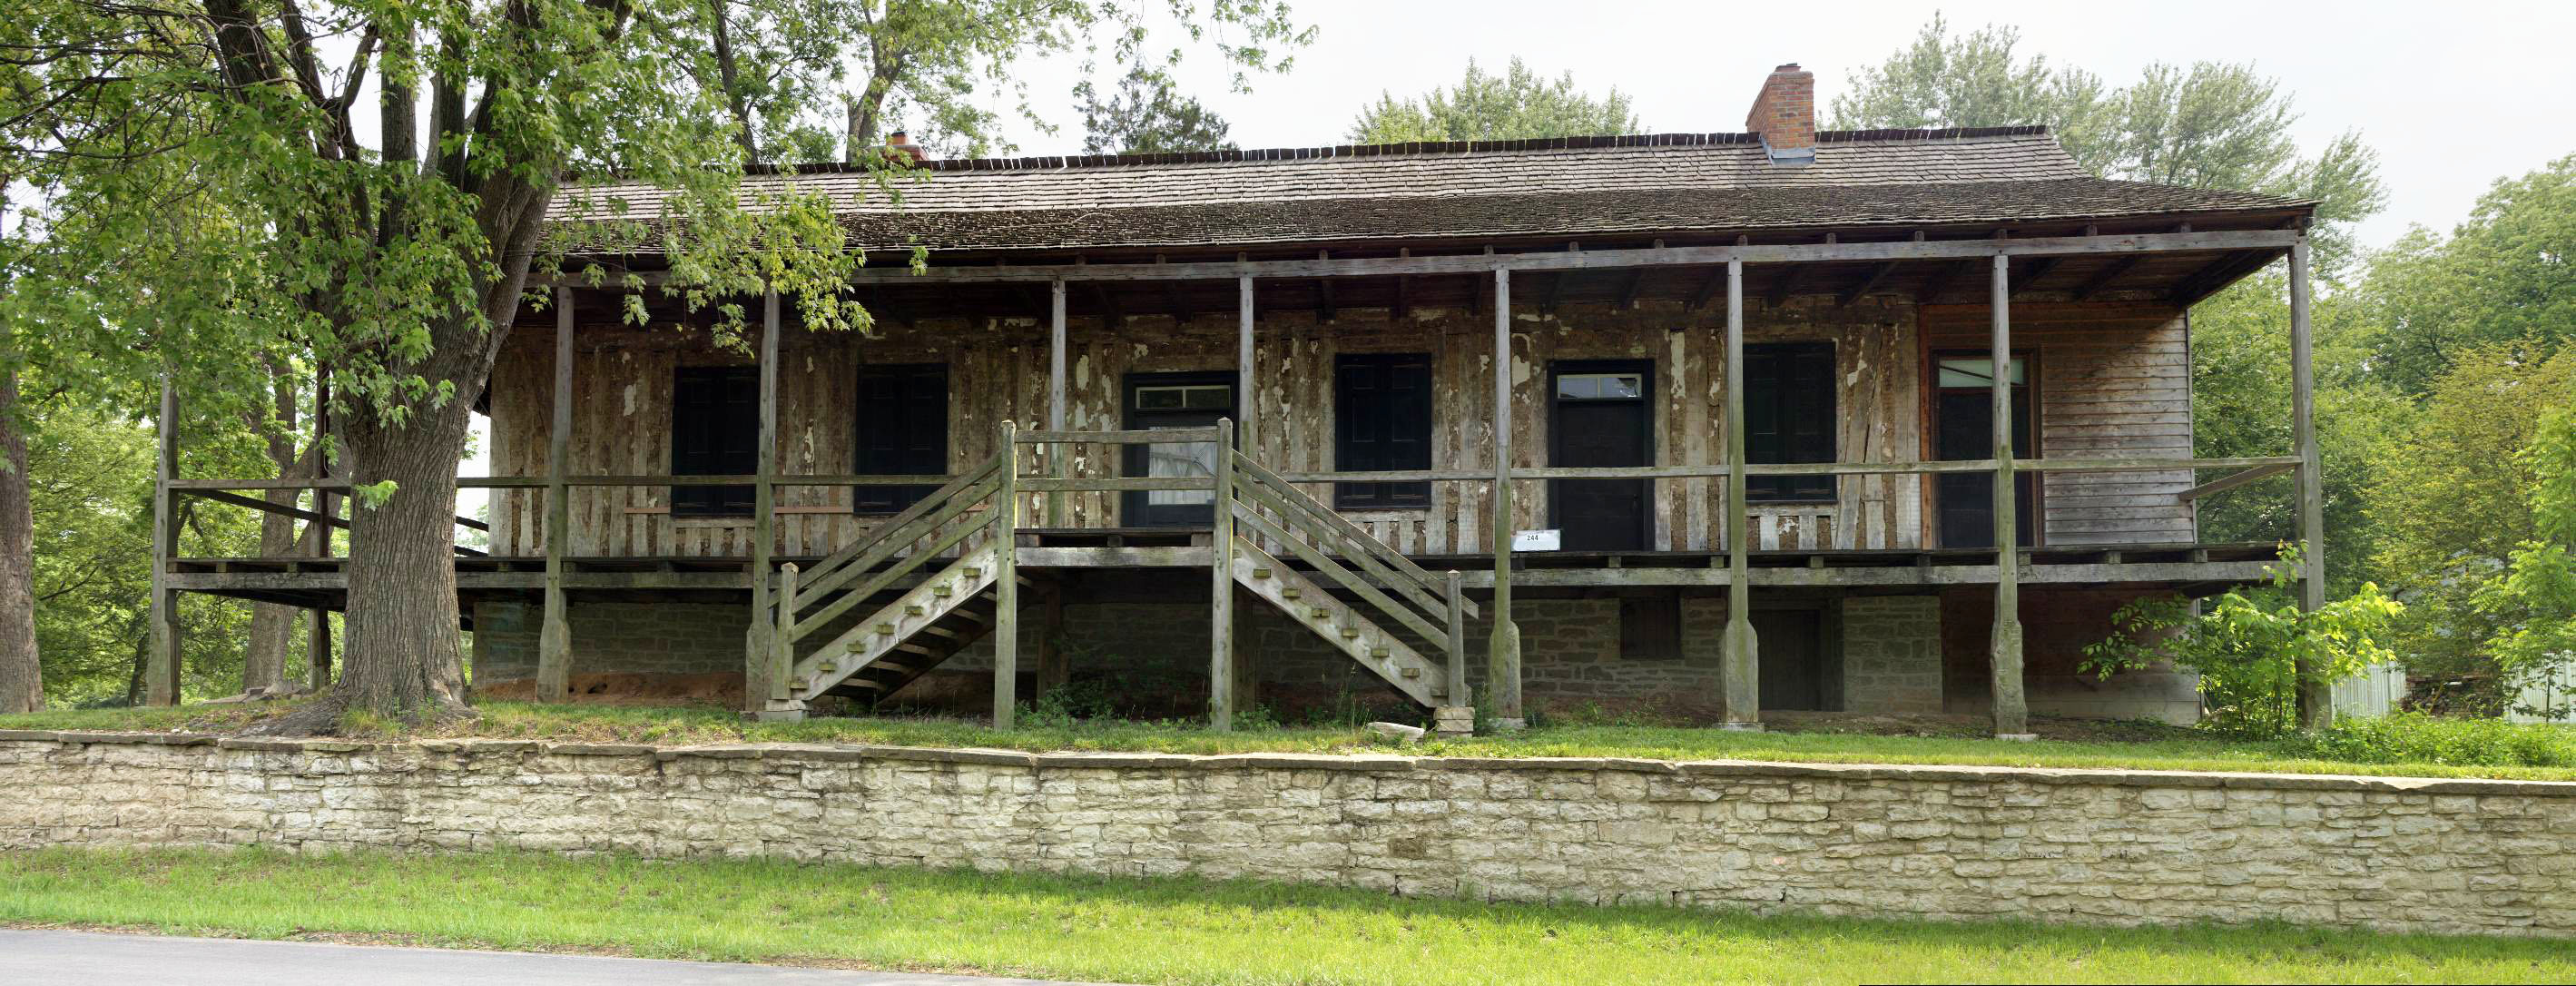 File:Photograph of the Greentree Tavern in Ste Genevieve MO.jpg ...